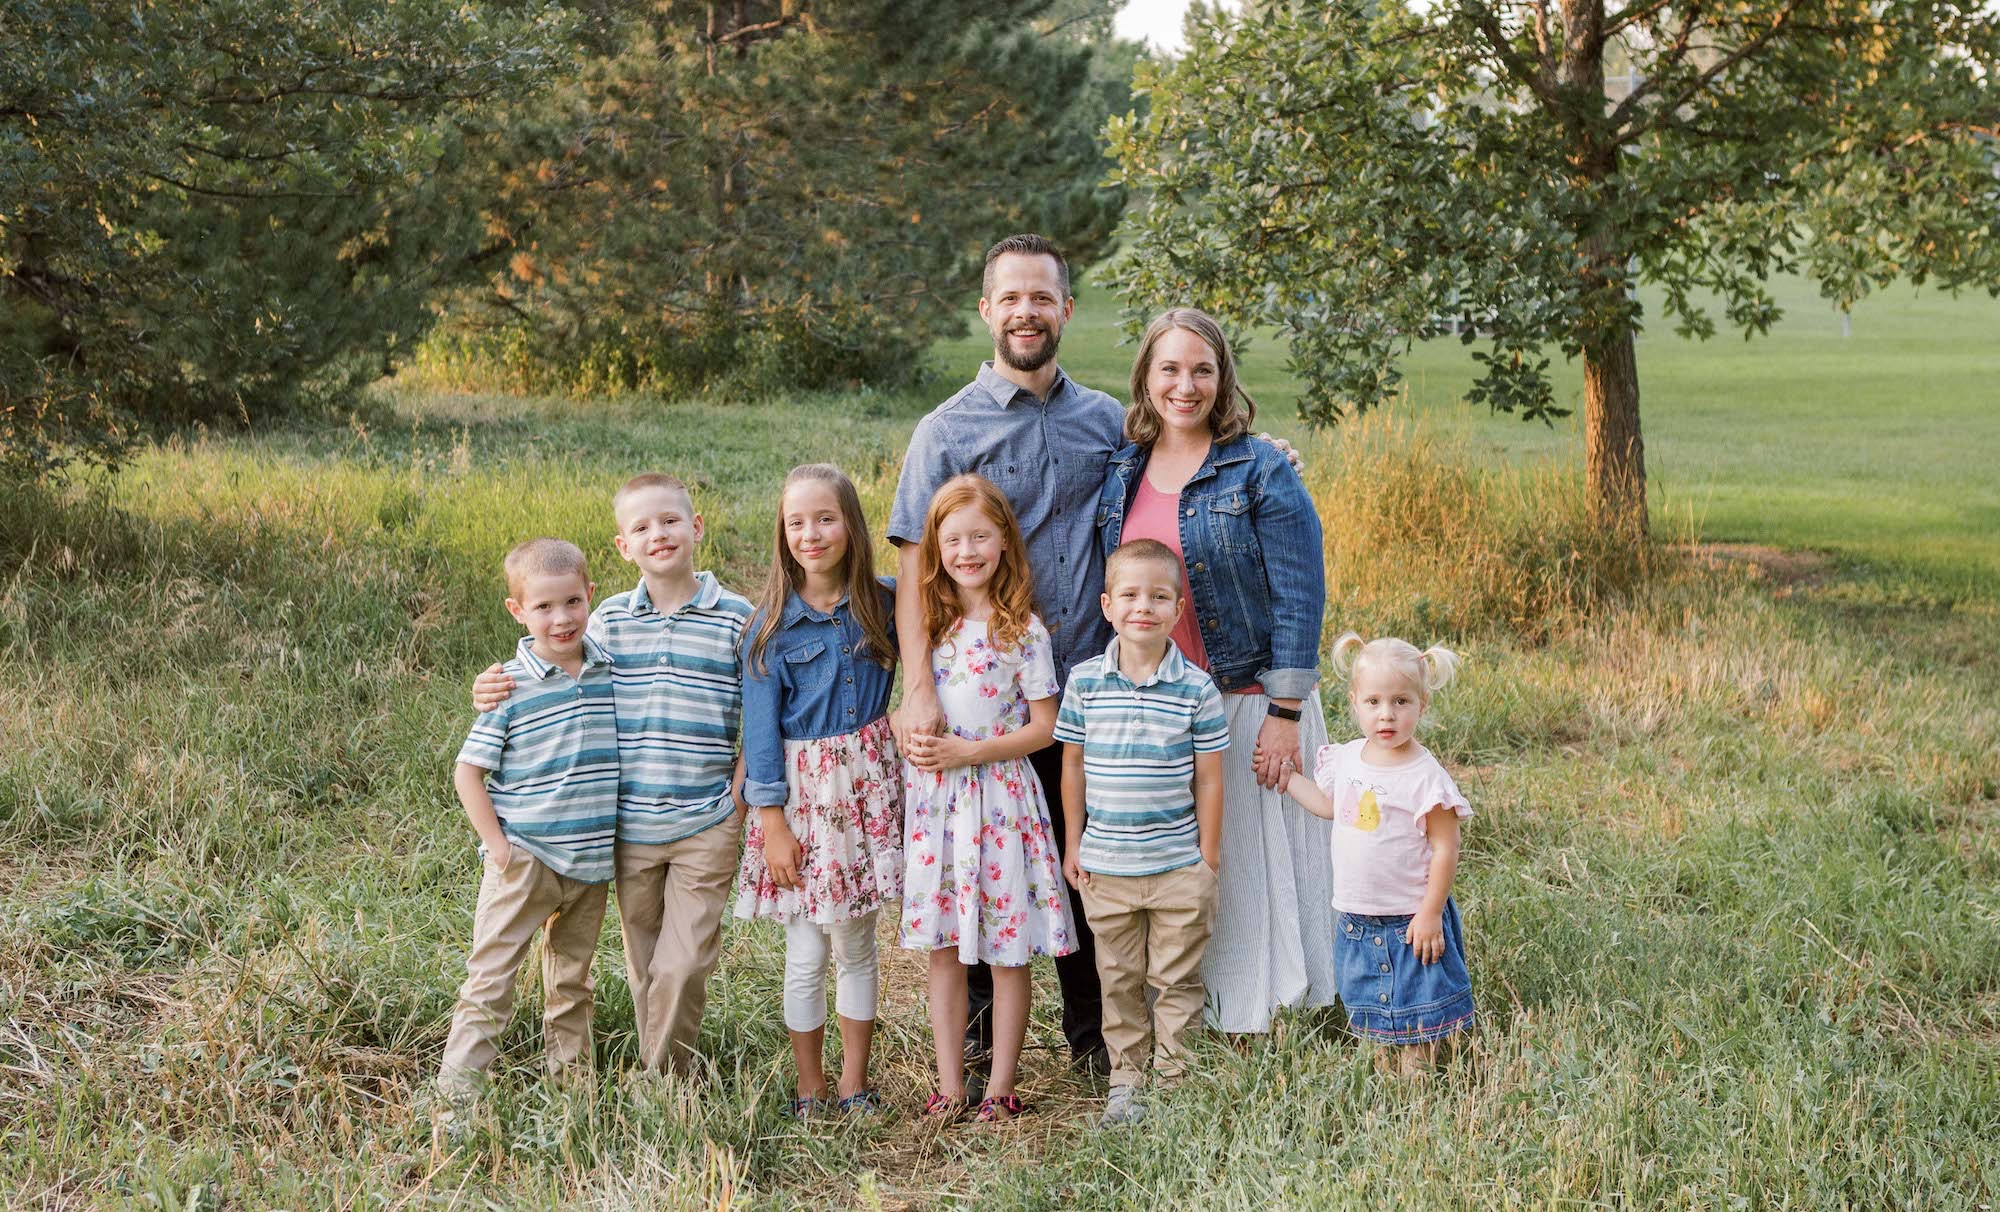 Johnson Family is raising money on AdoptTogether for their adoption from Ukraine.